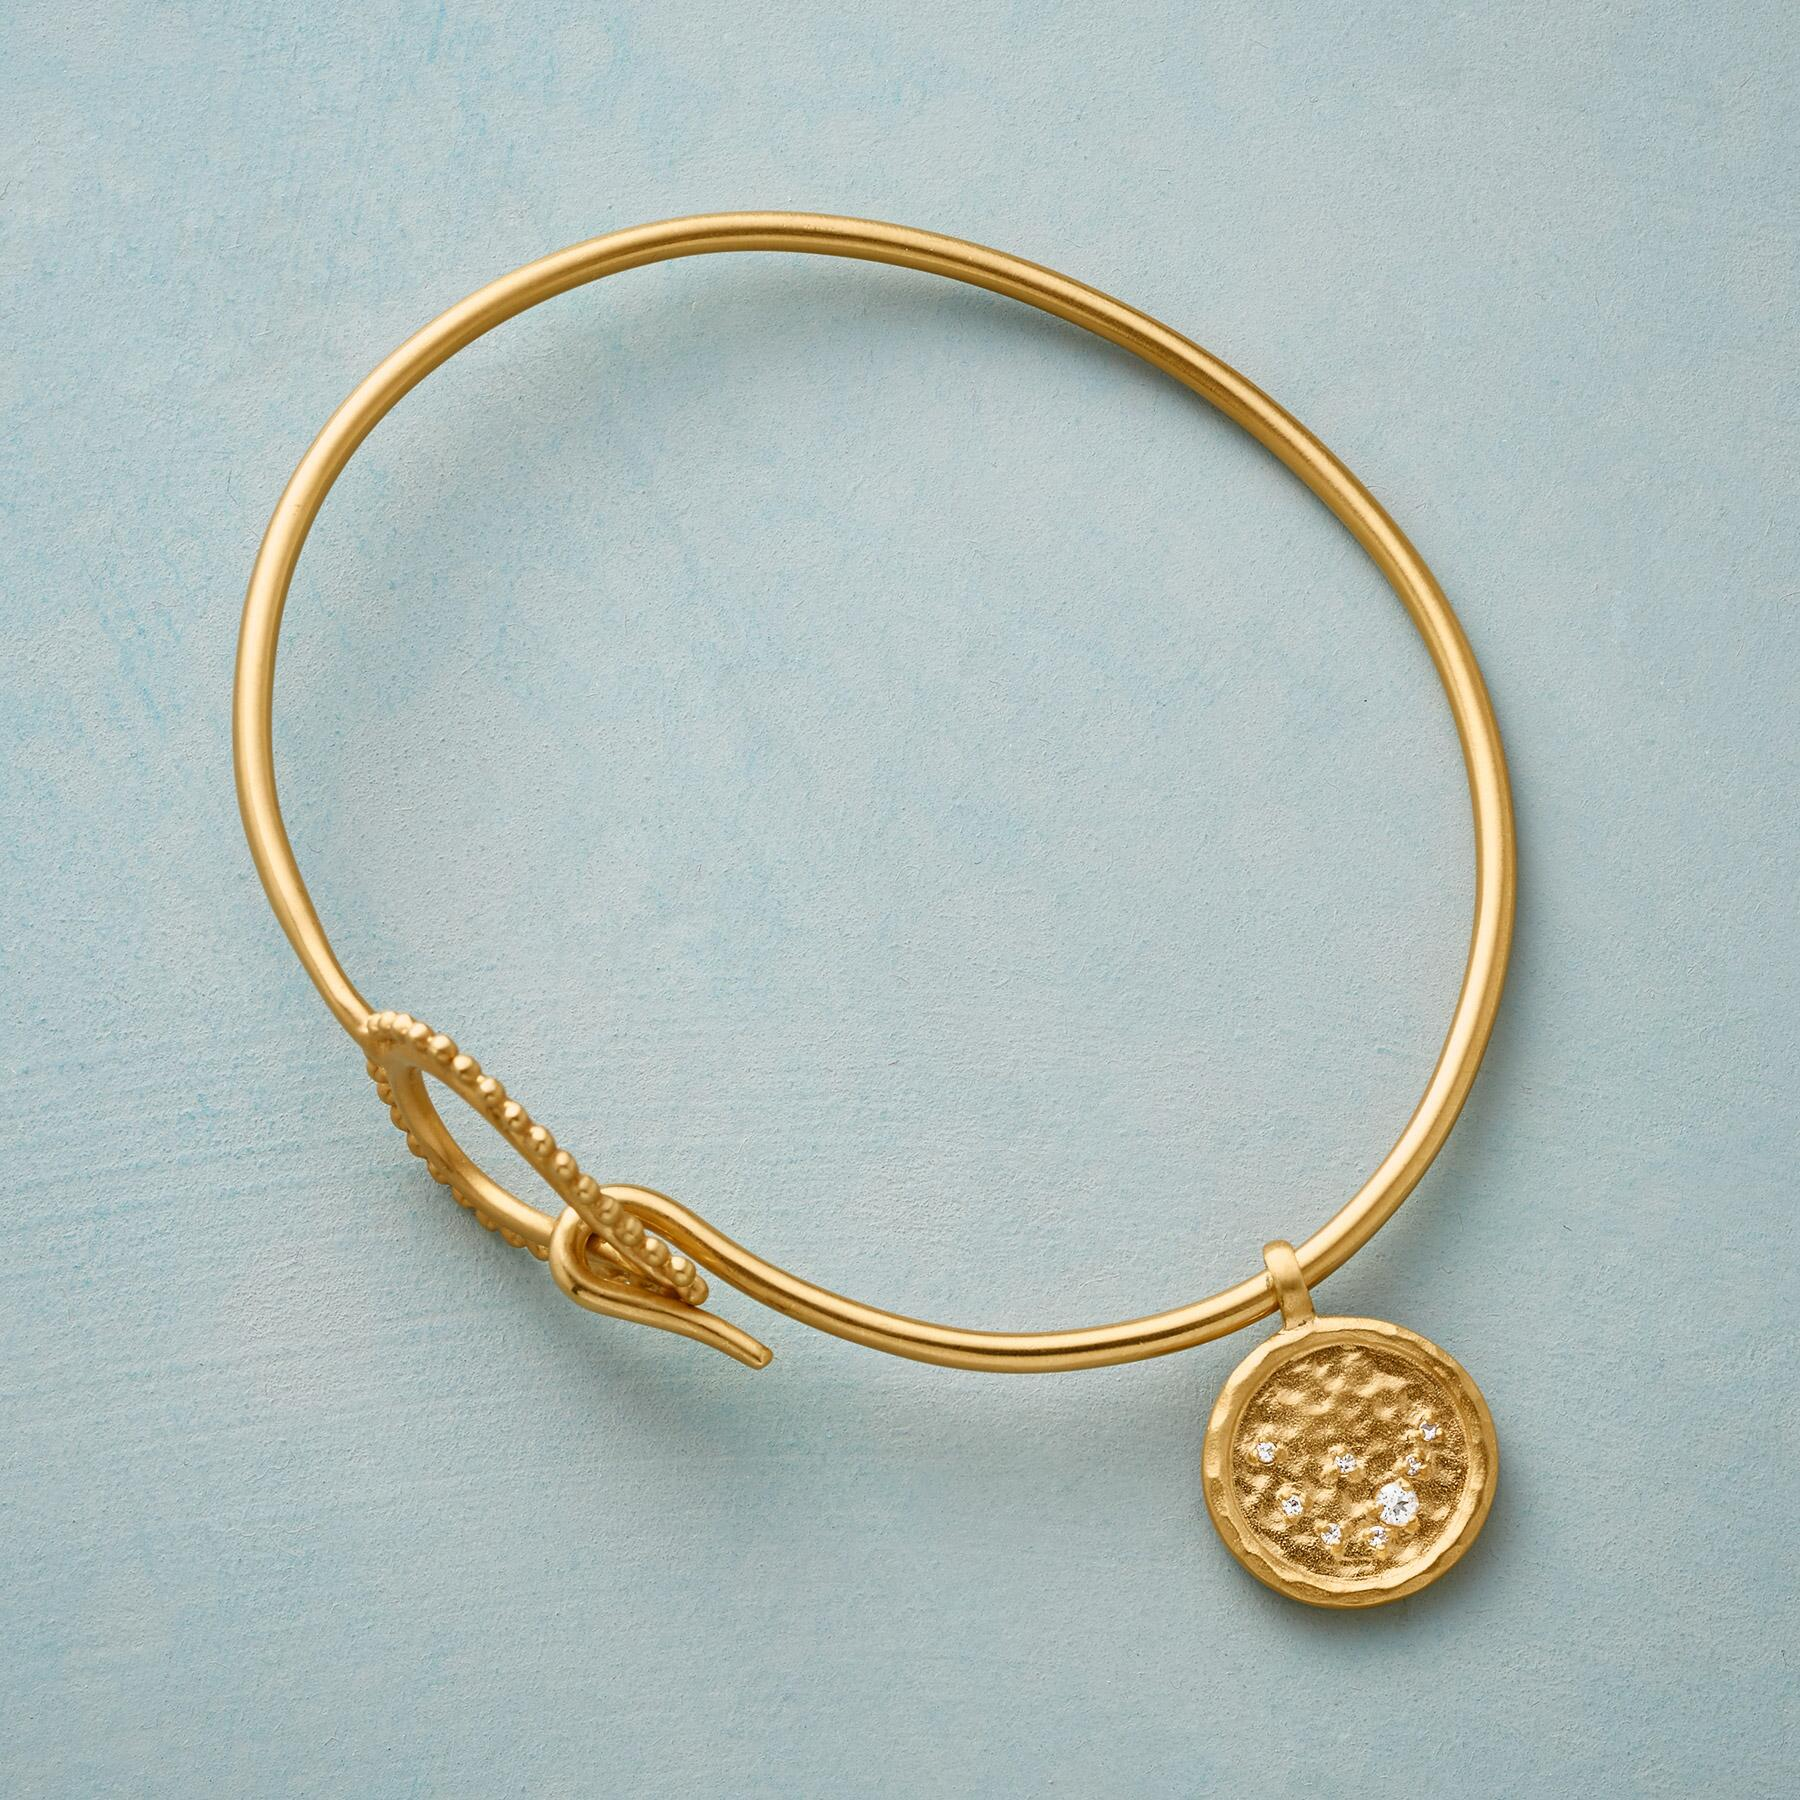 GOLD PLATE CHARMED ZODIAC: View 2